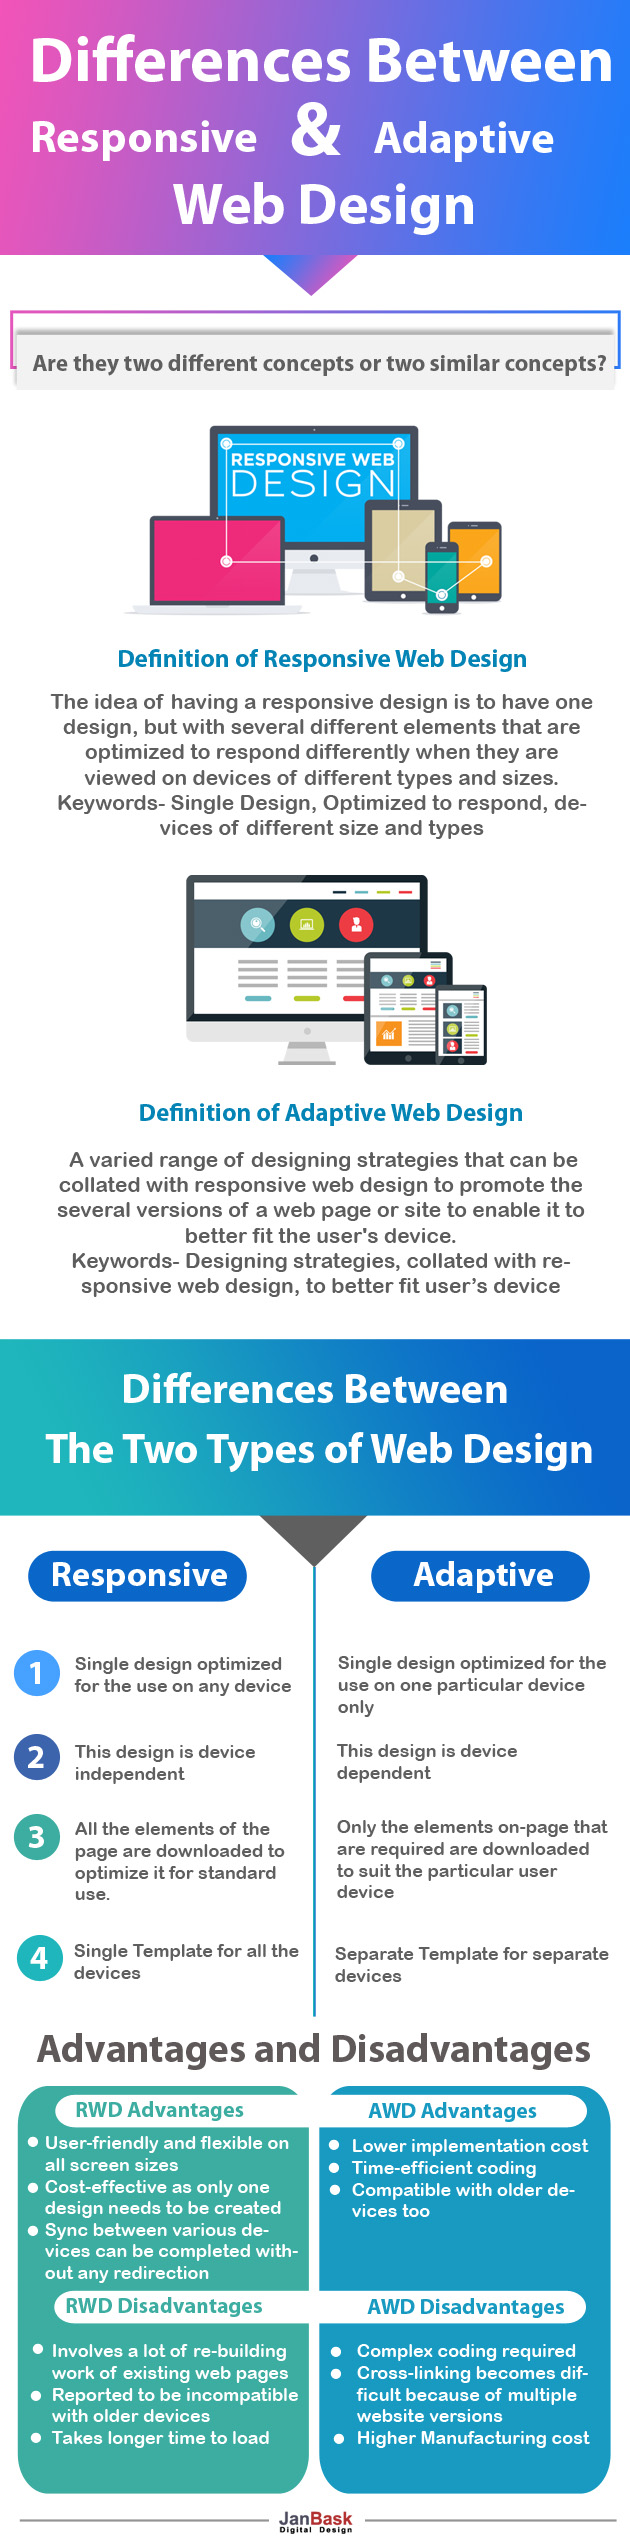 Differences Between Responsive and Adaptive Web Design Infographic